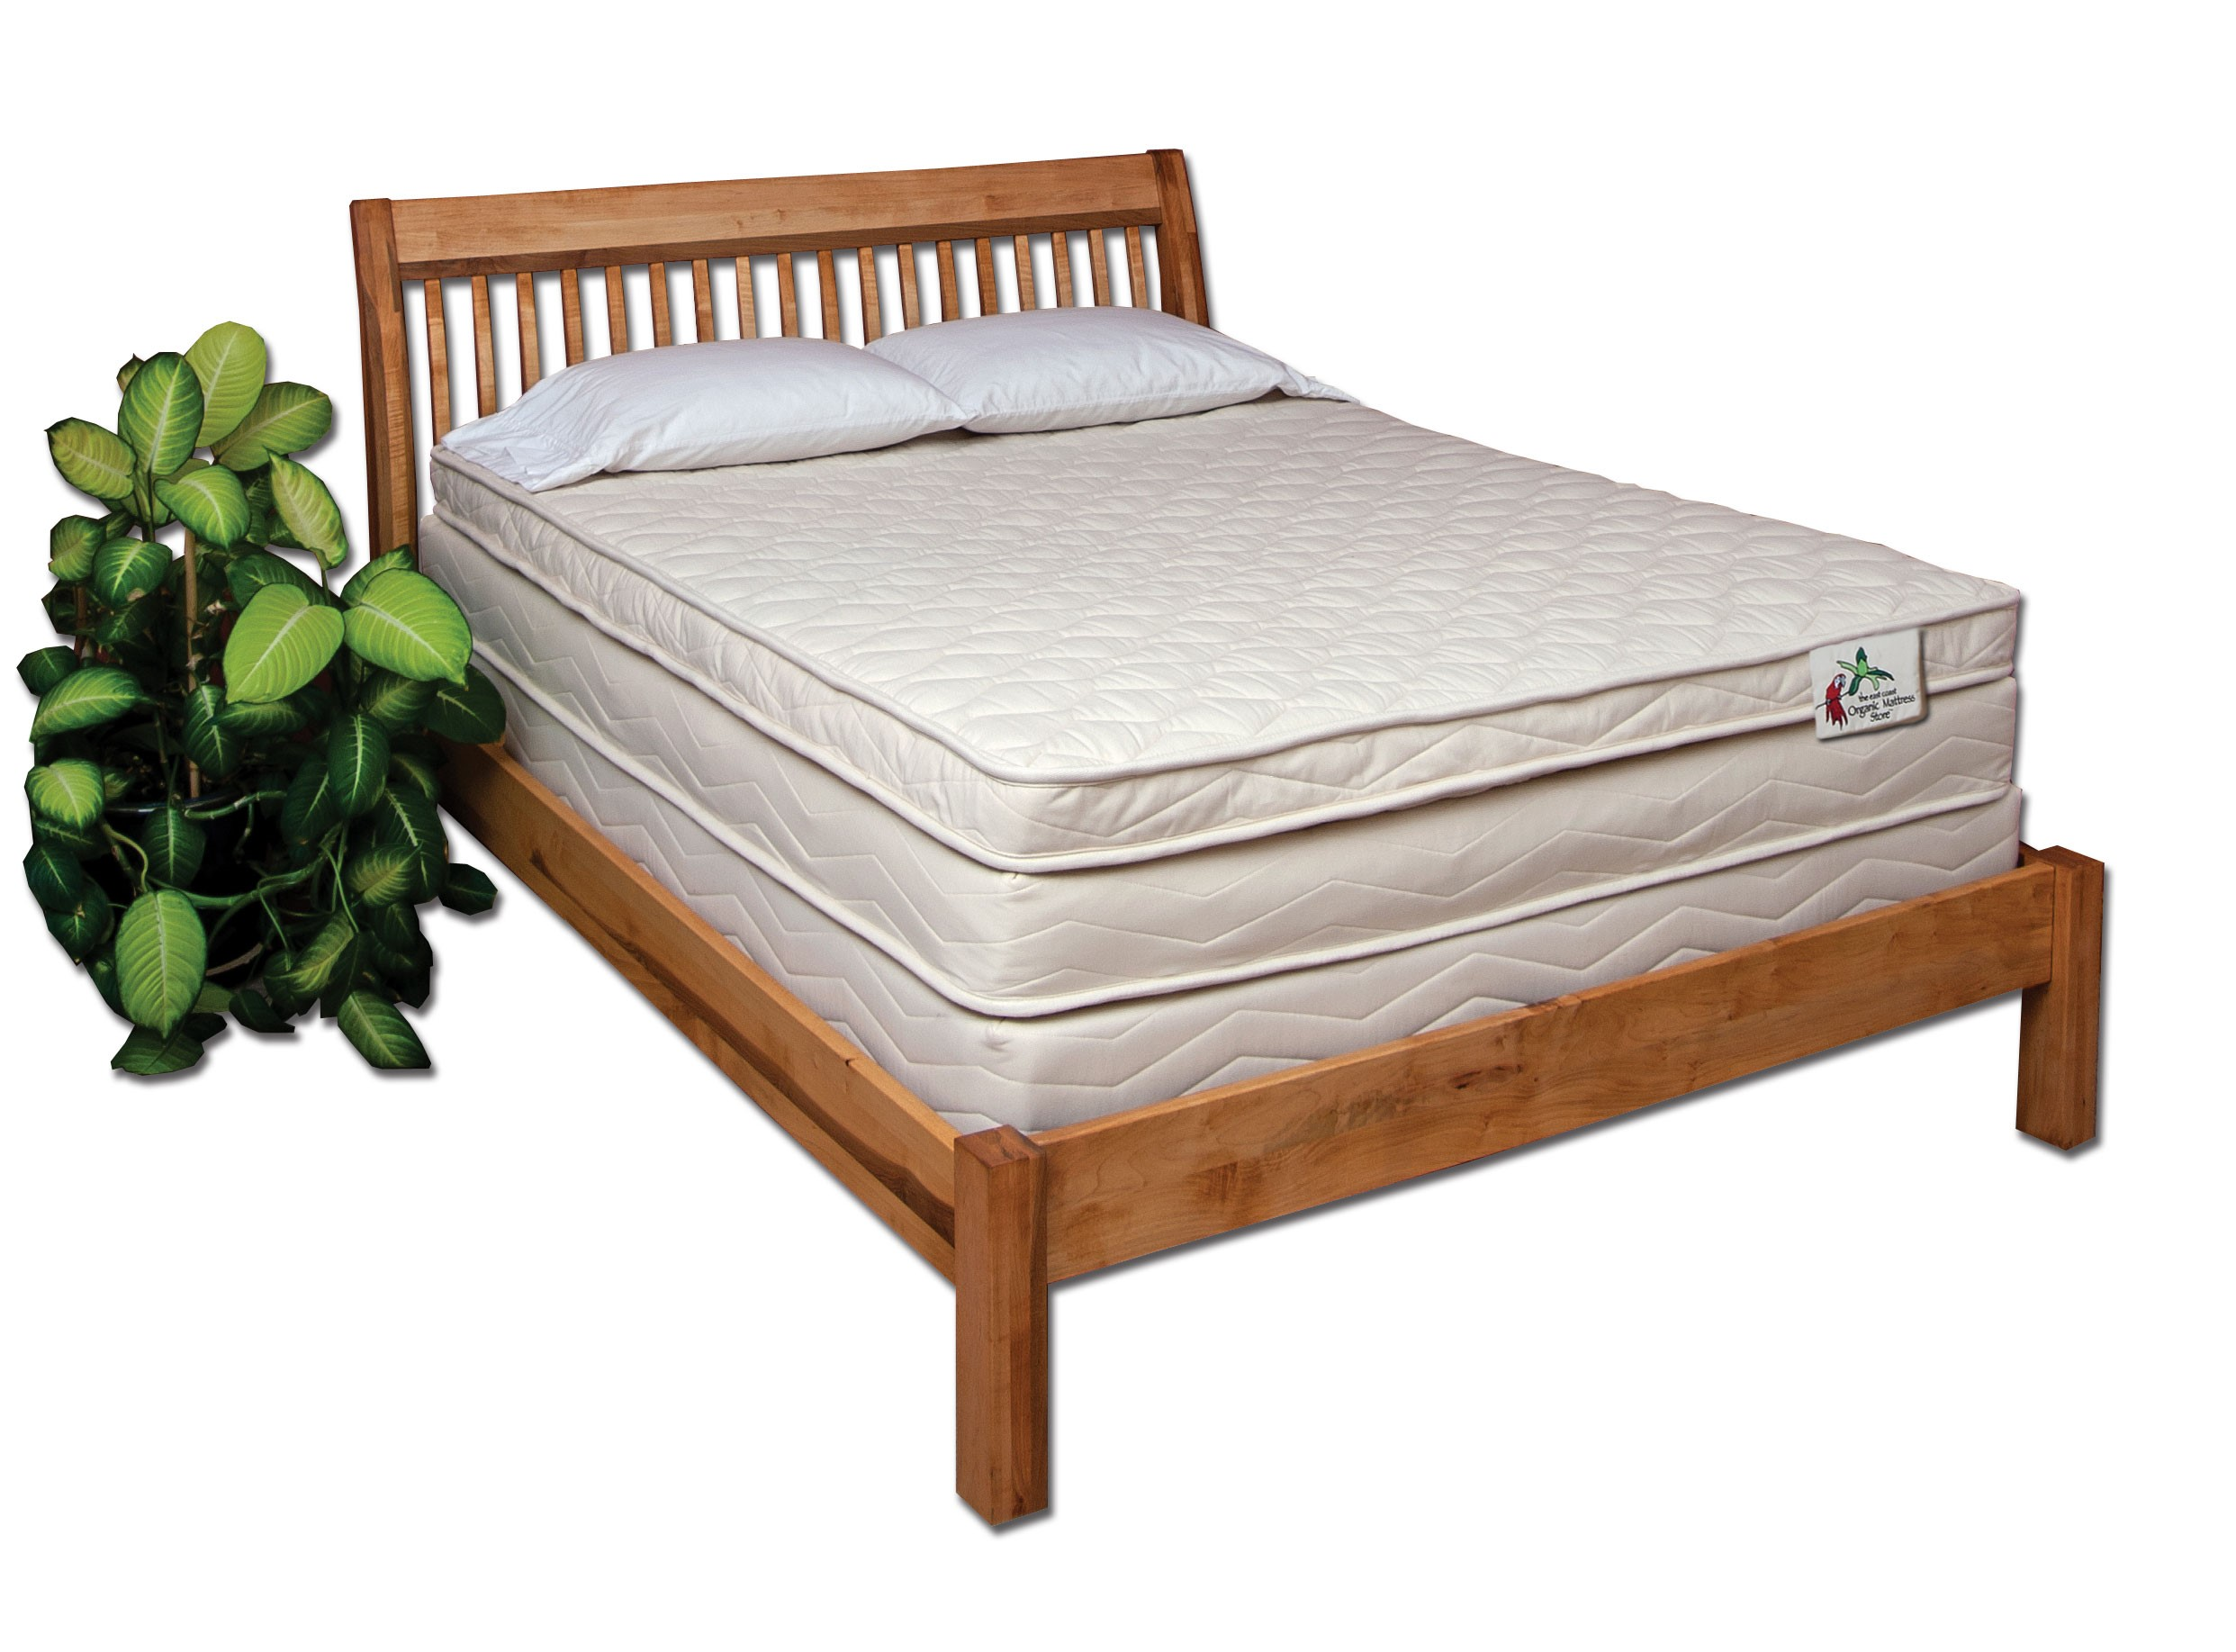 Top Features Of Natural Wood Bed Frames Organic Mattress